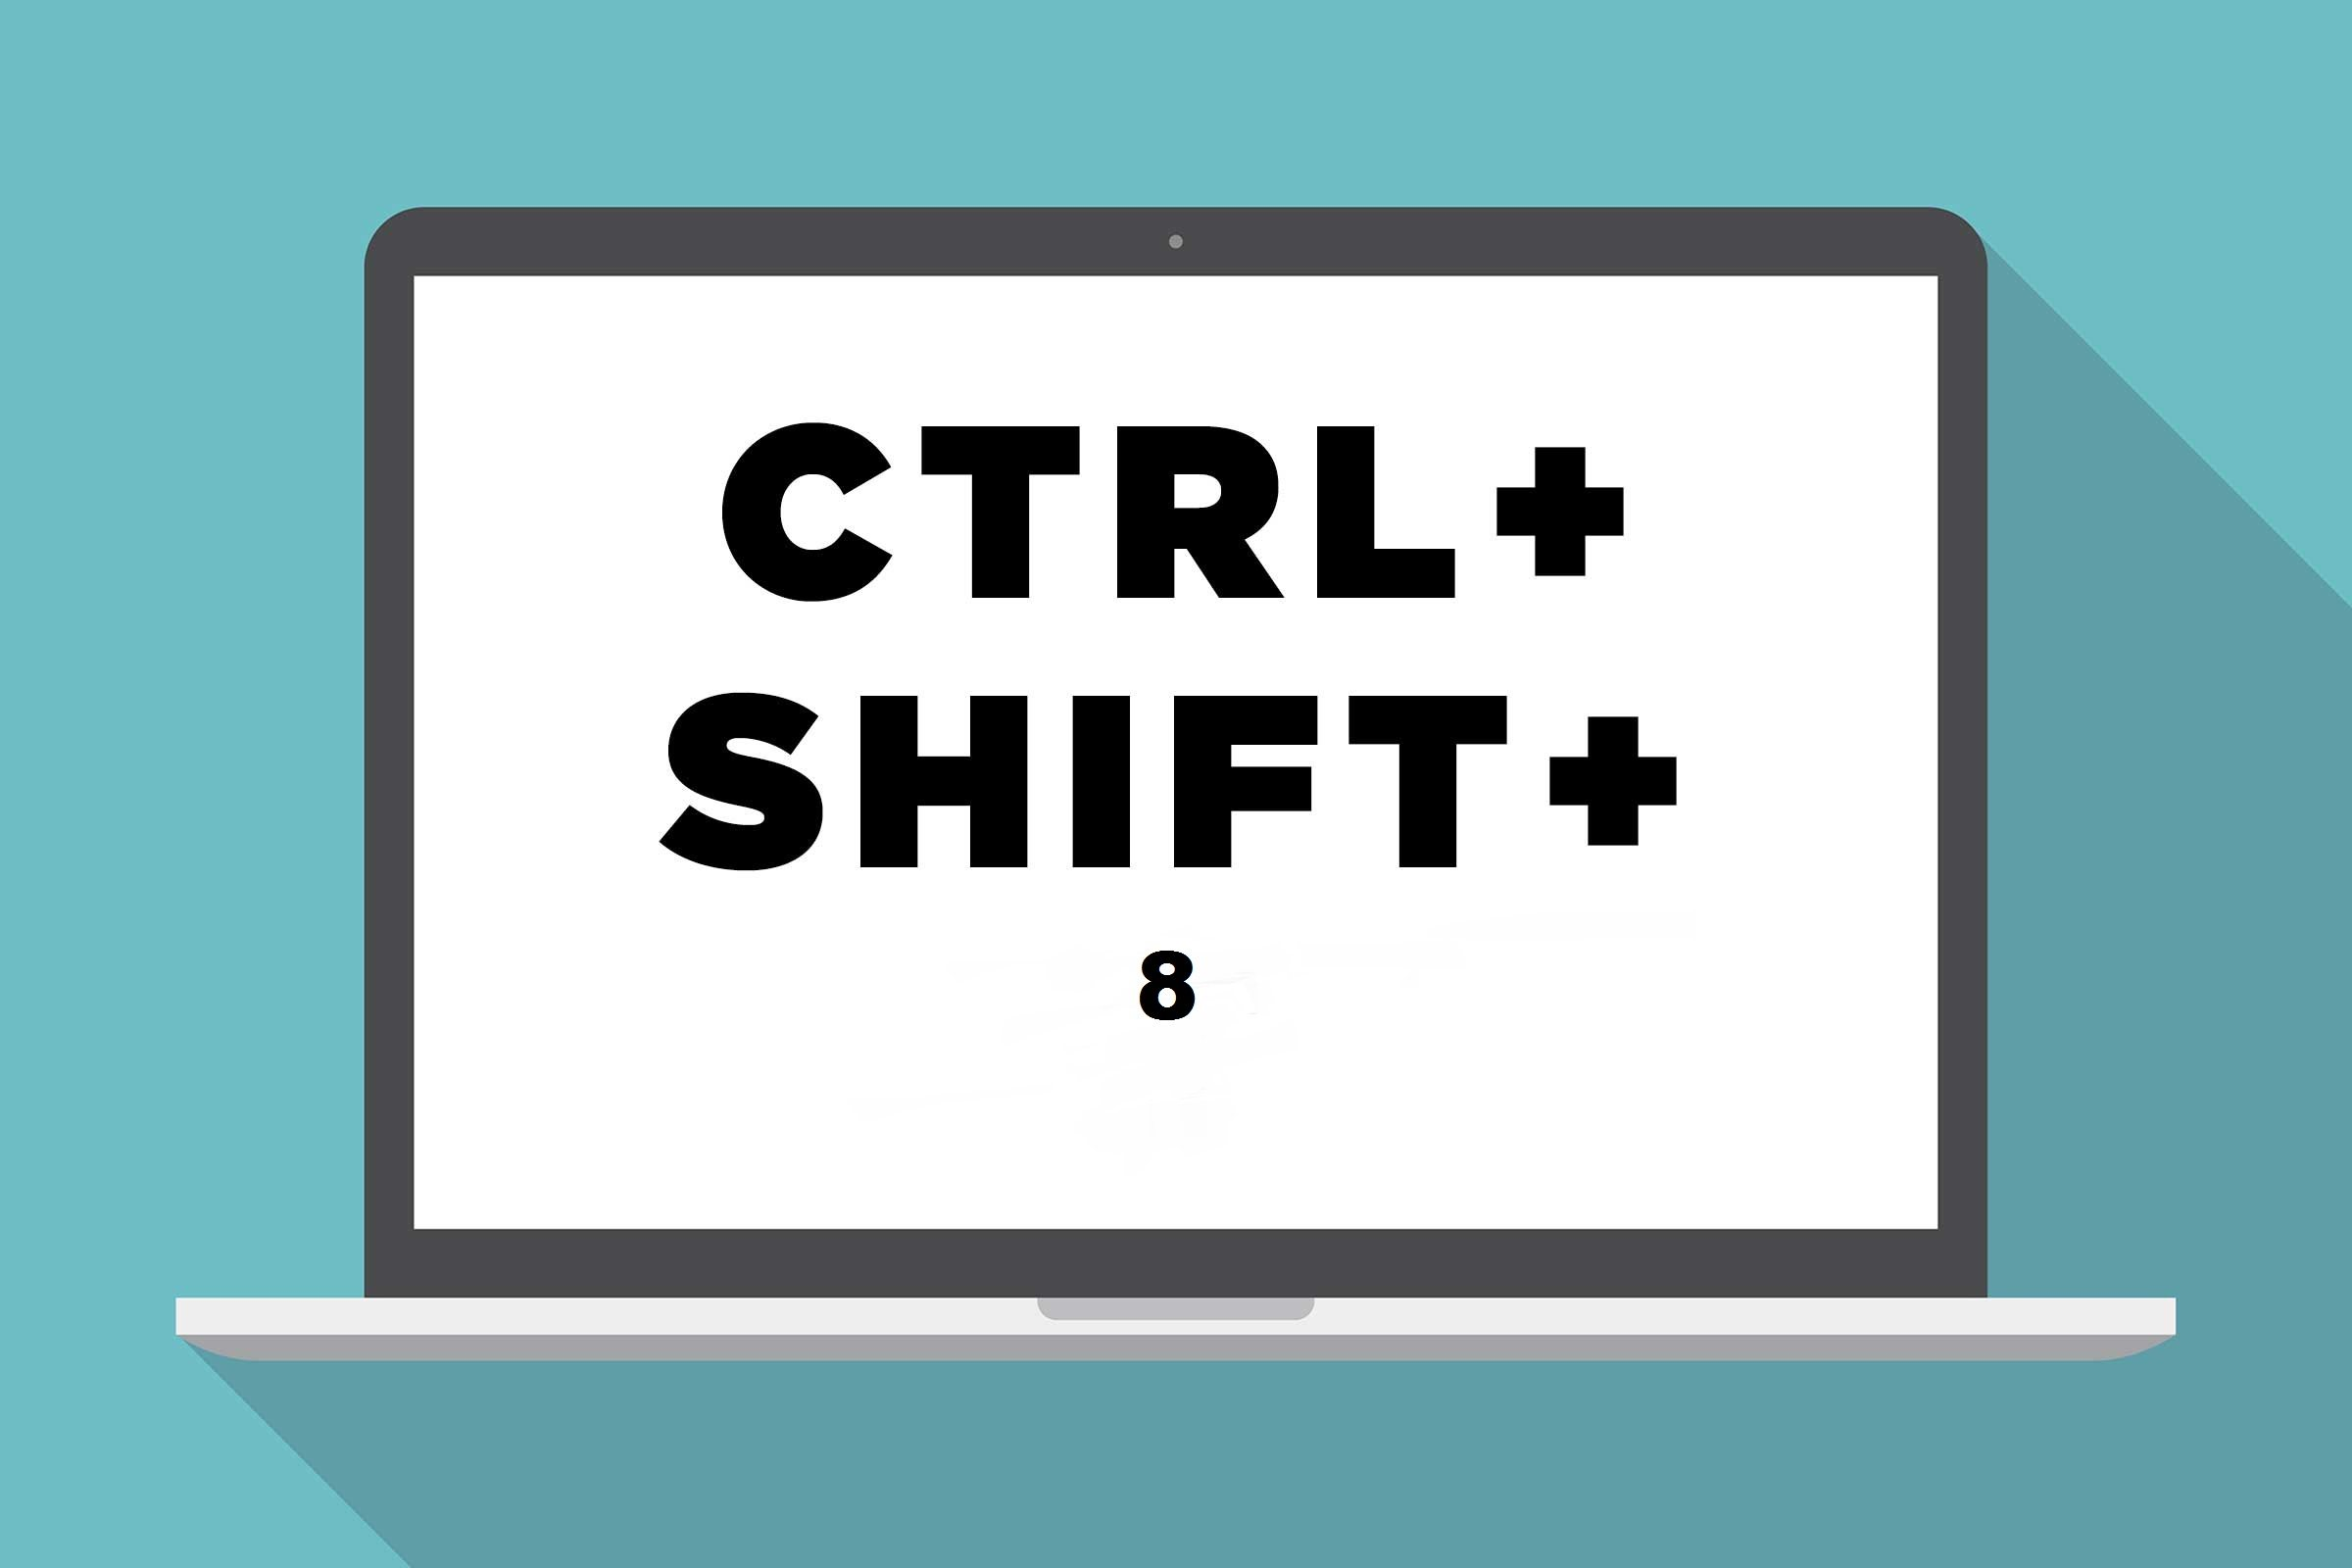 Create A 3d Object In Microsoft Word Page, Then Hold Down Ctrl+shift+ How  1 Pages Shortcut Key For Deleting